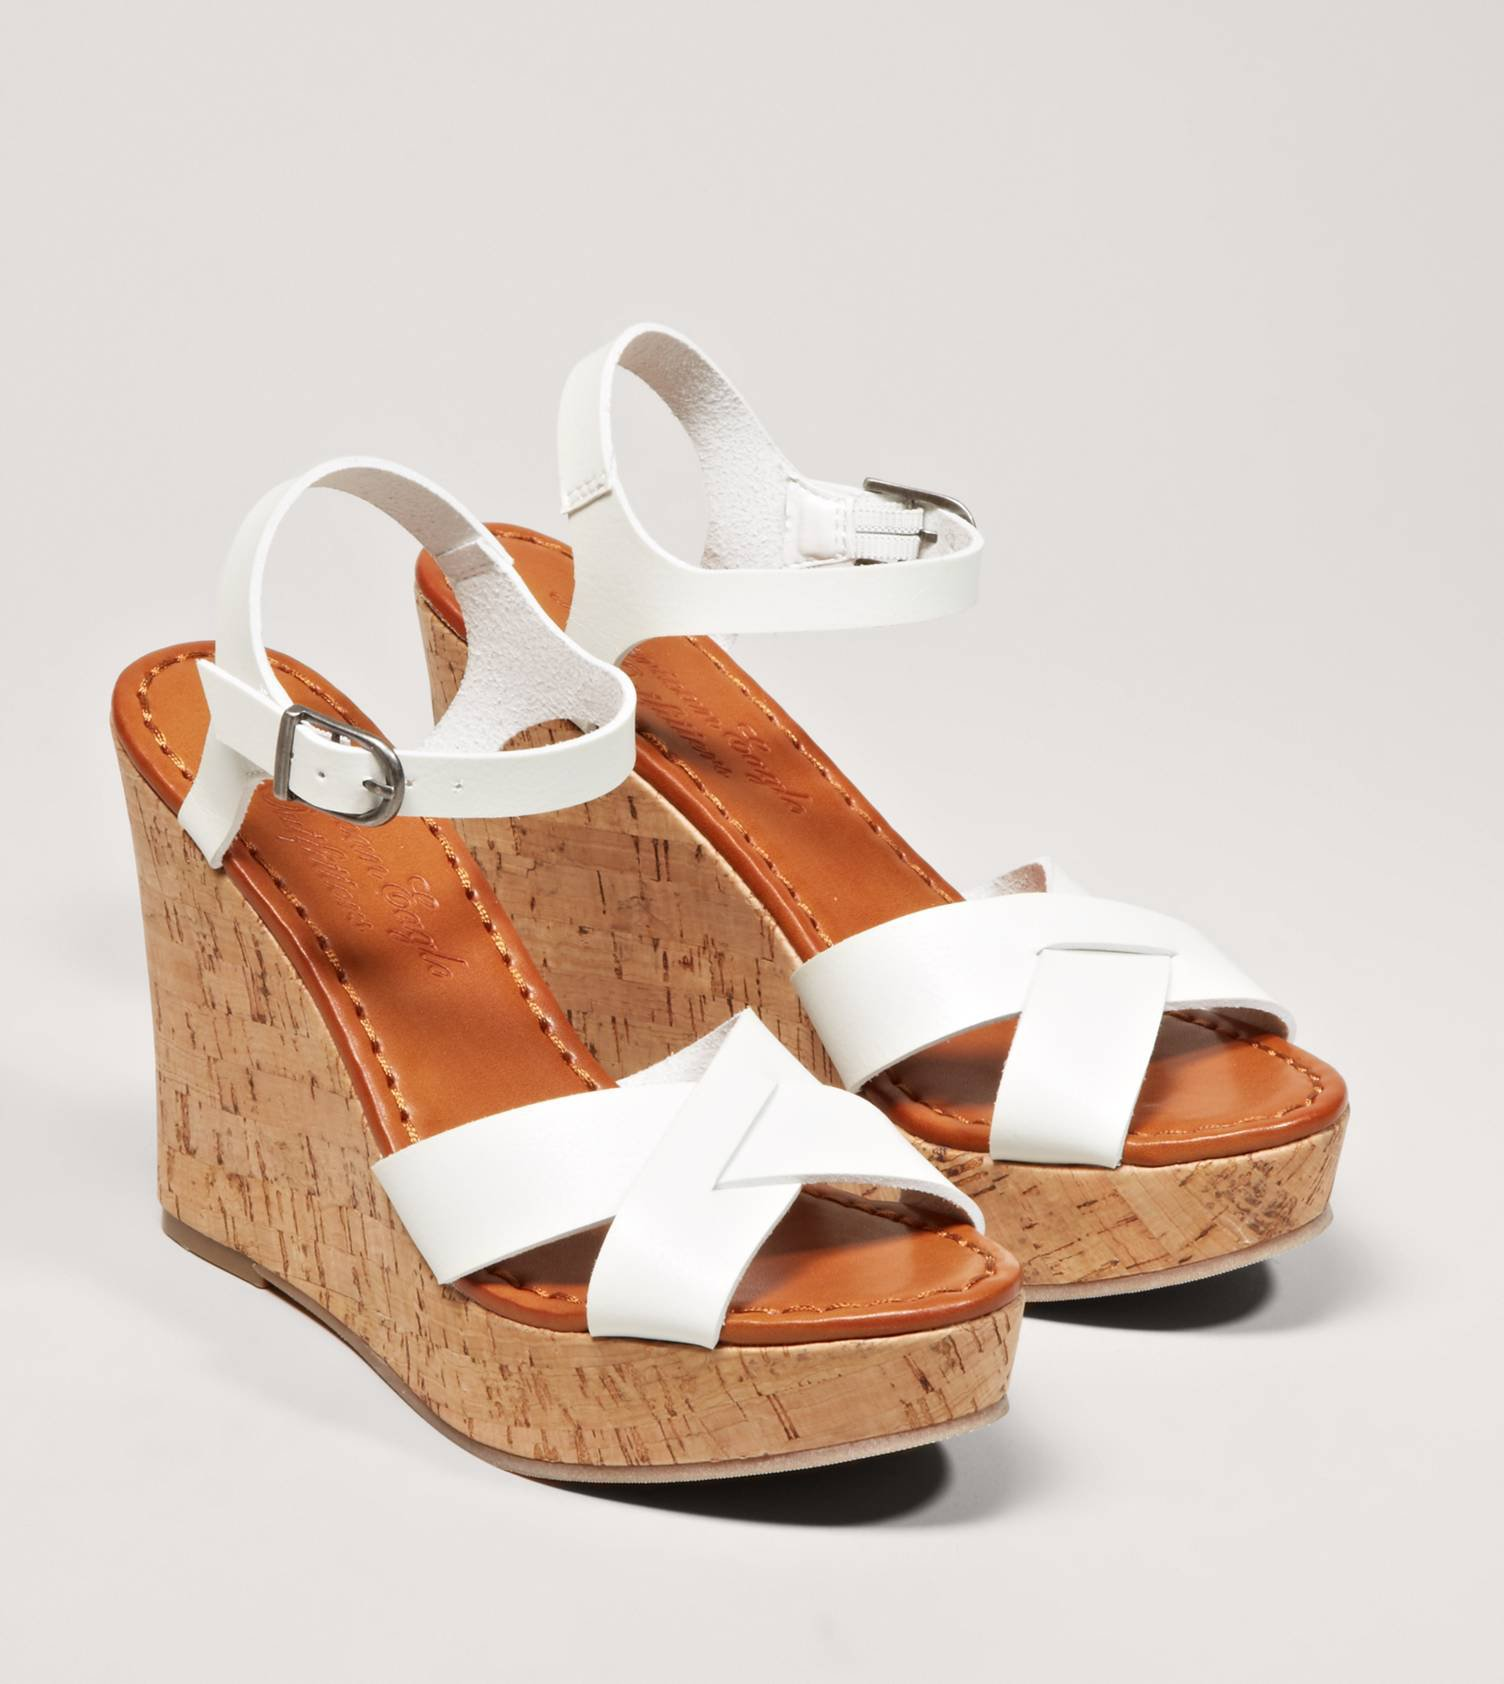 Shop for great deals on American Eagle Outfitters at Vinted. Save up to 80% on American Eagle Outfitters and other pre-loved clothing in Sandals to complete your style.